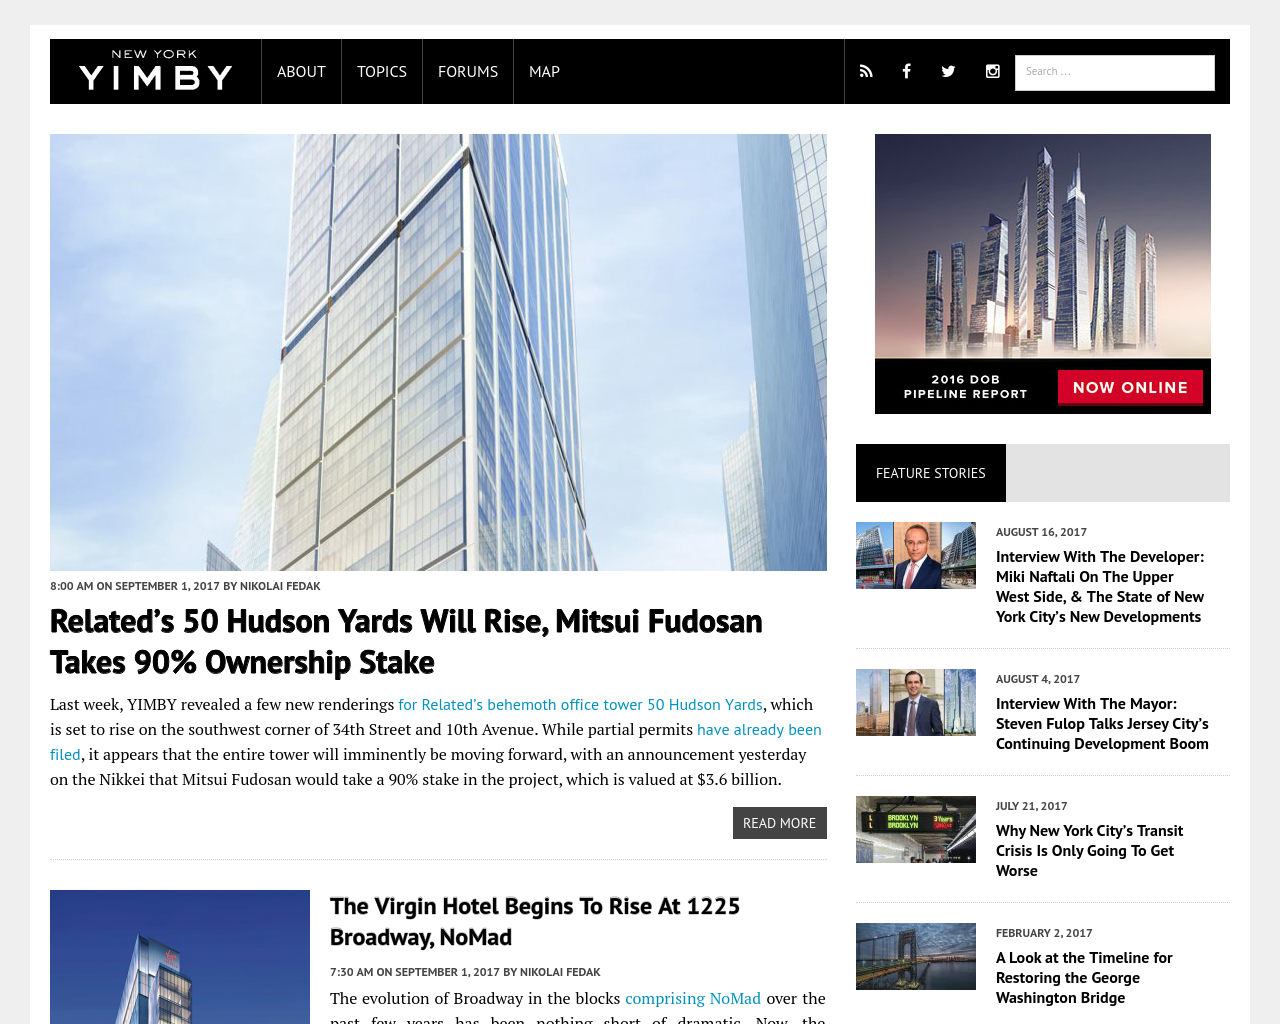 New-York-YIMBY-Advertising-Reviews-Pricing